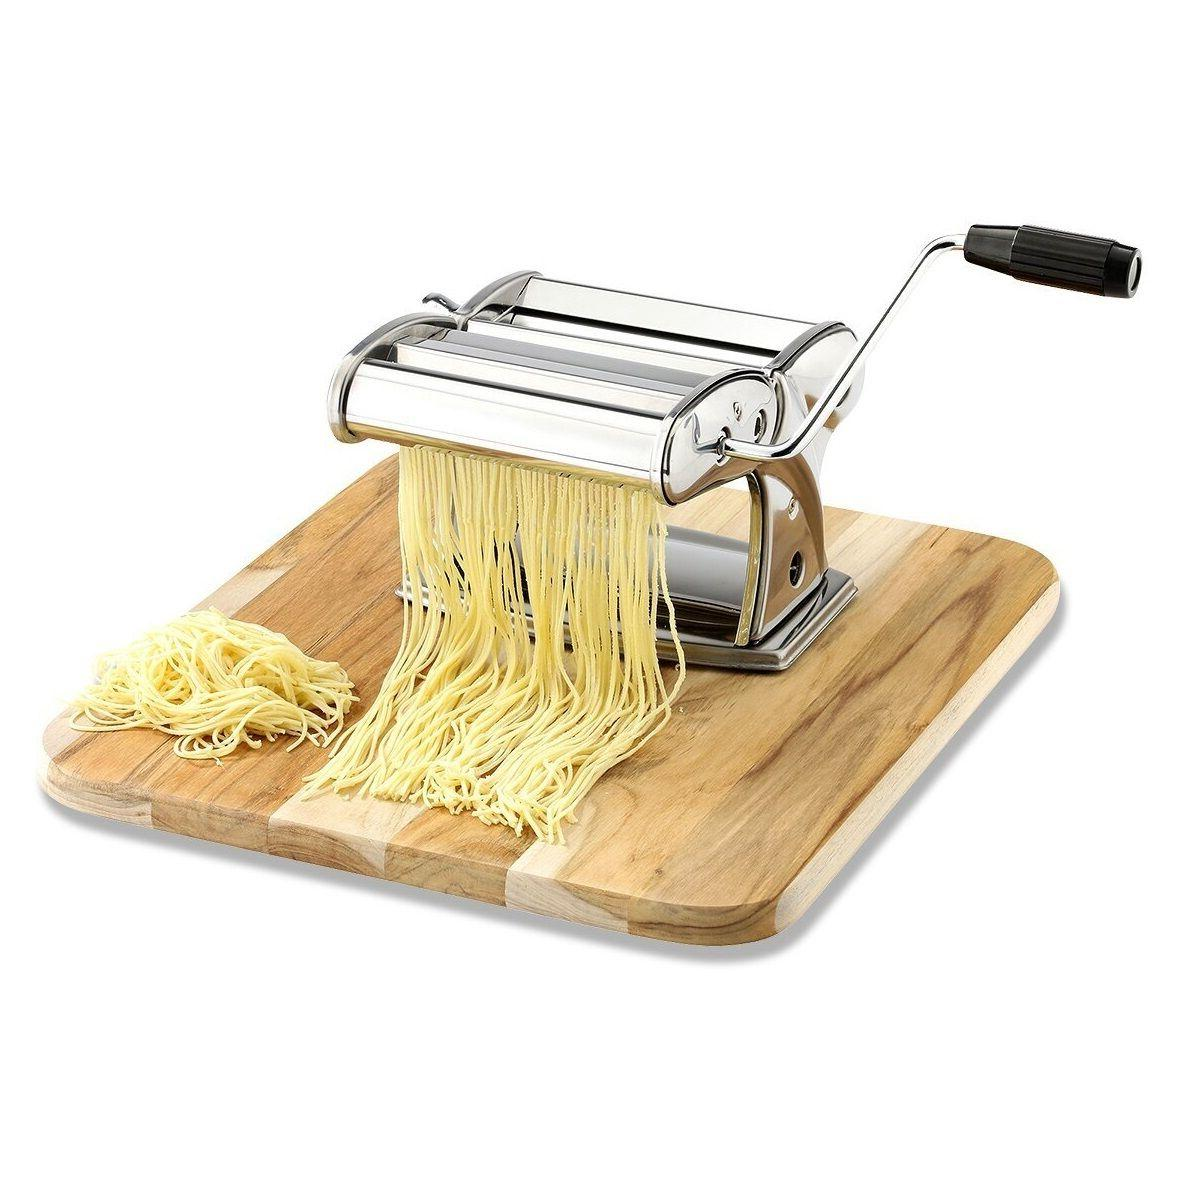 Professional With Hand Noodle & Accessories Kitchen